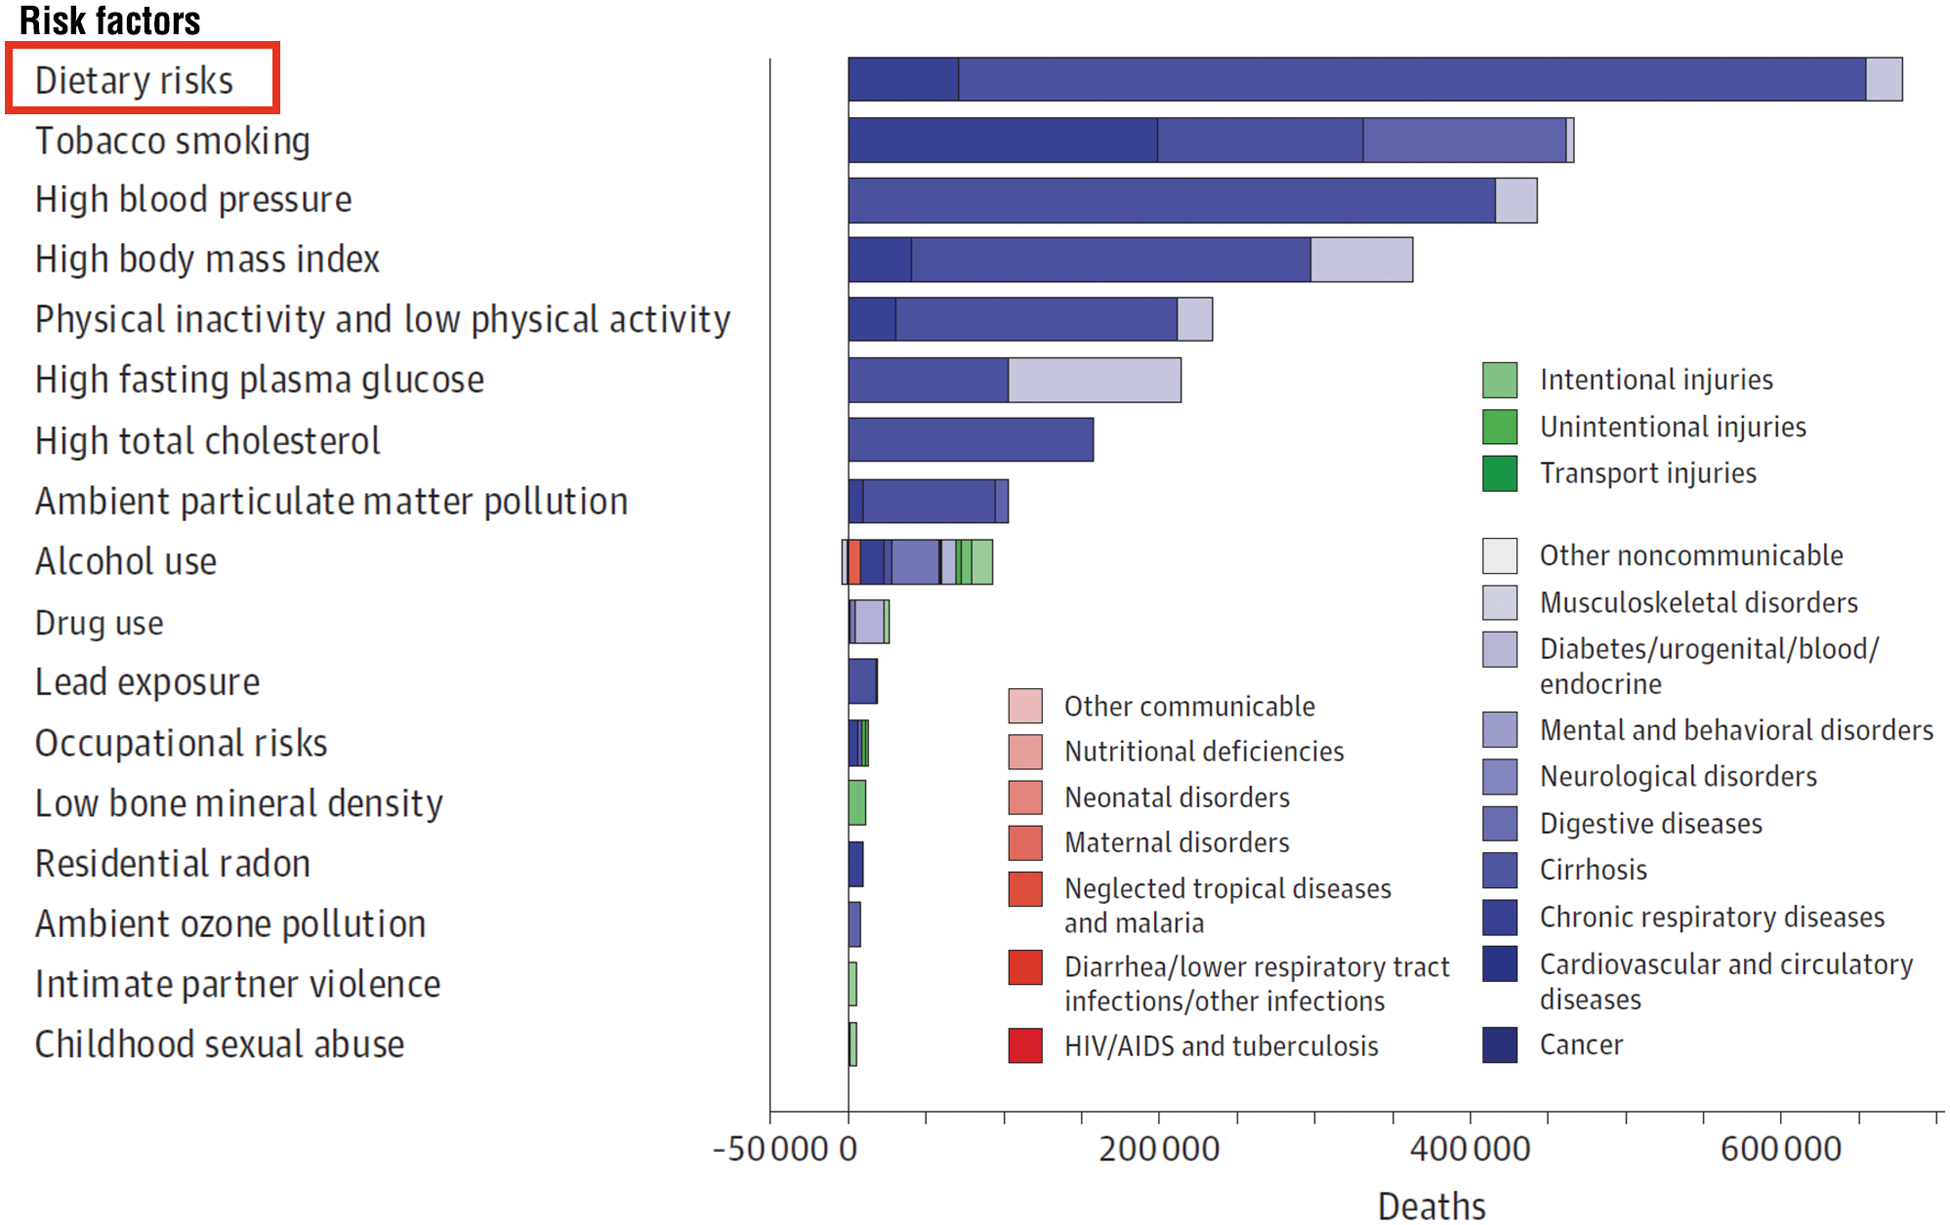 risk-factors-mortality-and-daly-us-2010